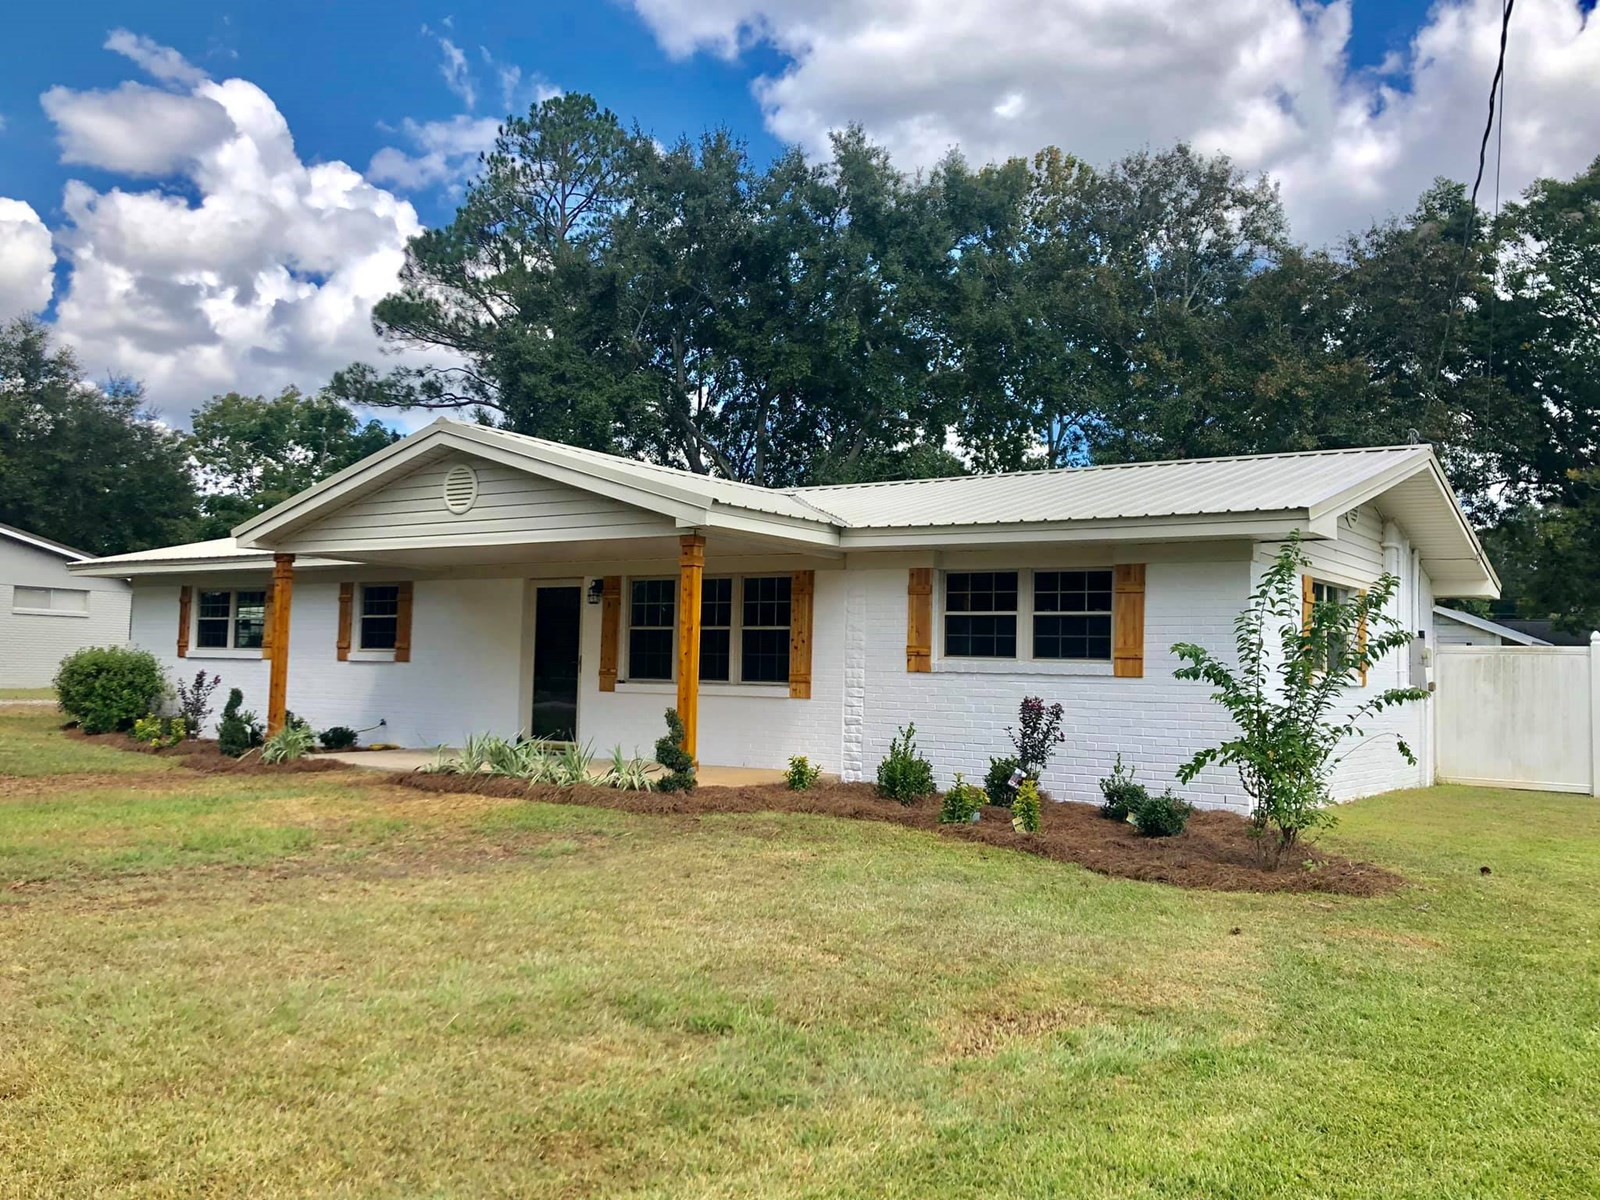 4B/2.5B Remodeled Home for sale in Slocomb, AL